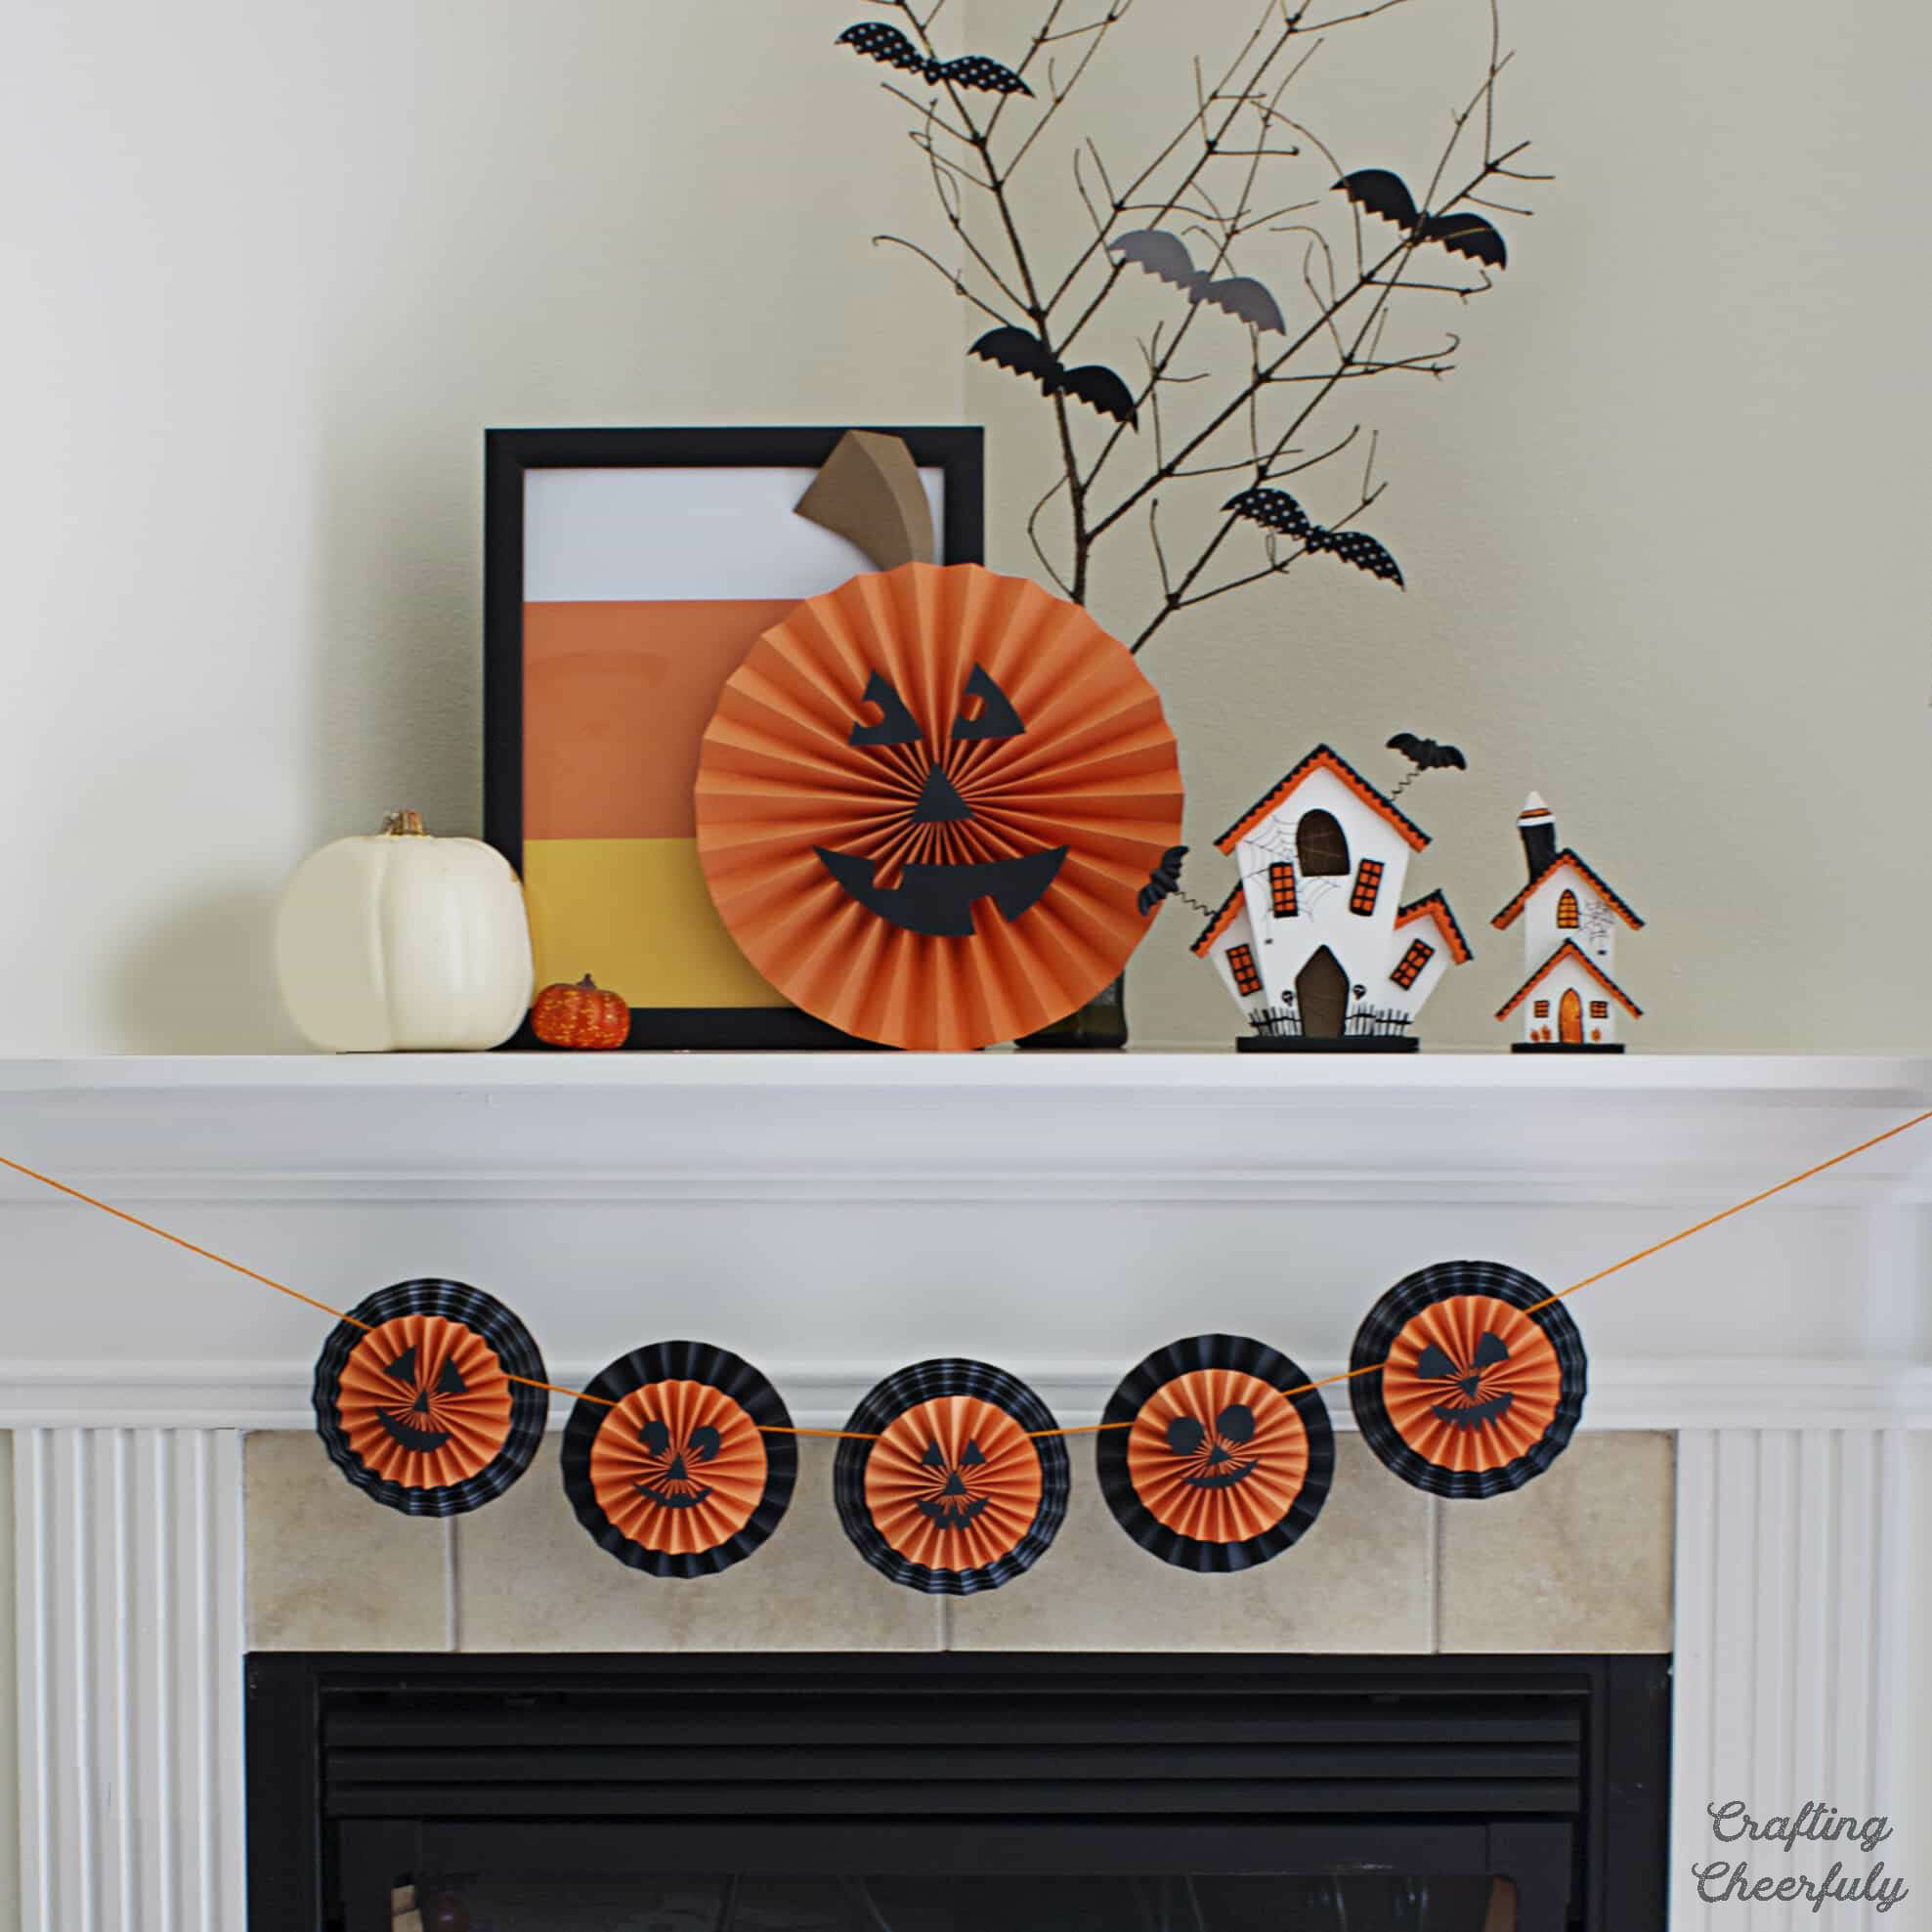 Jack-o'-Lantern Pumpkin banner hangs on a mantle with other Halloween decorations.